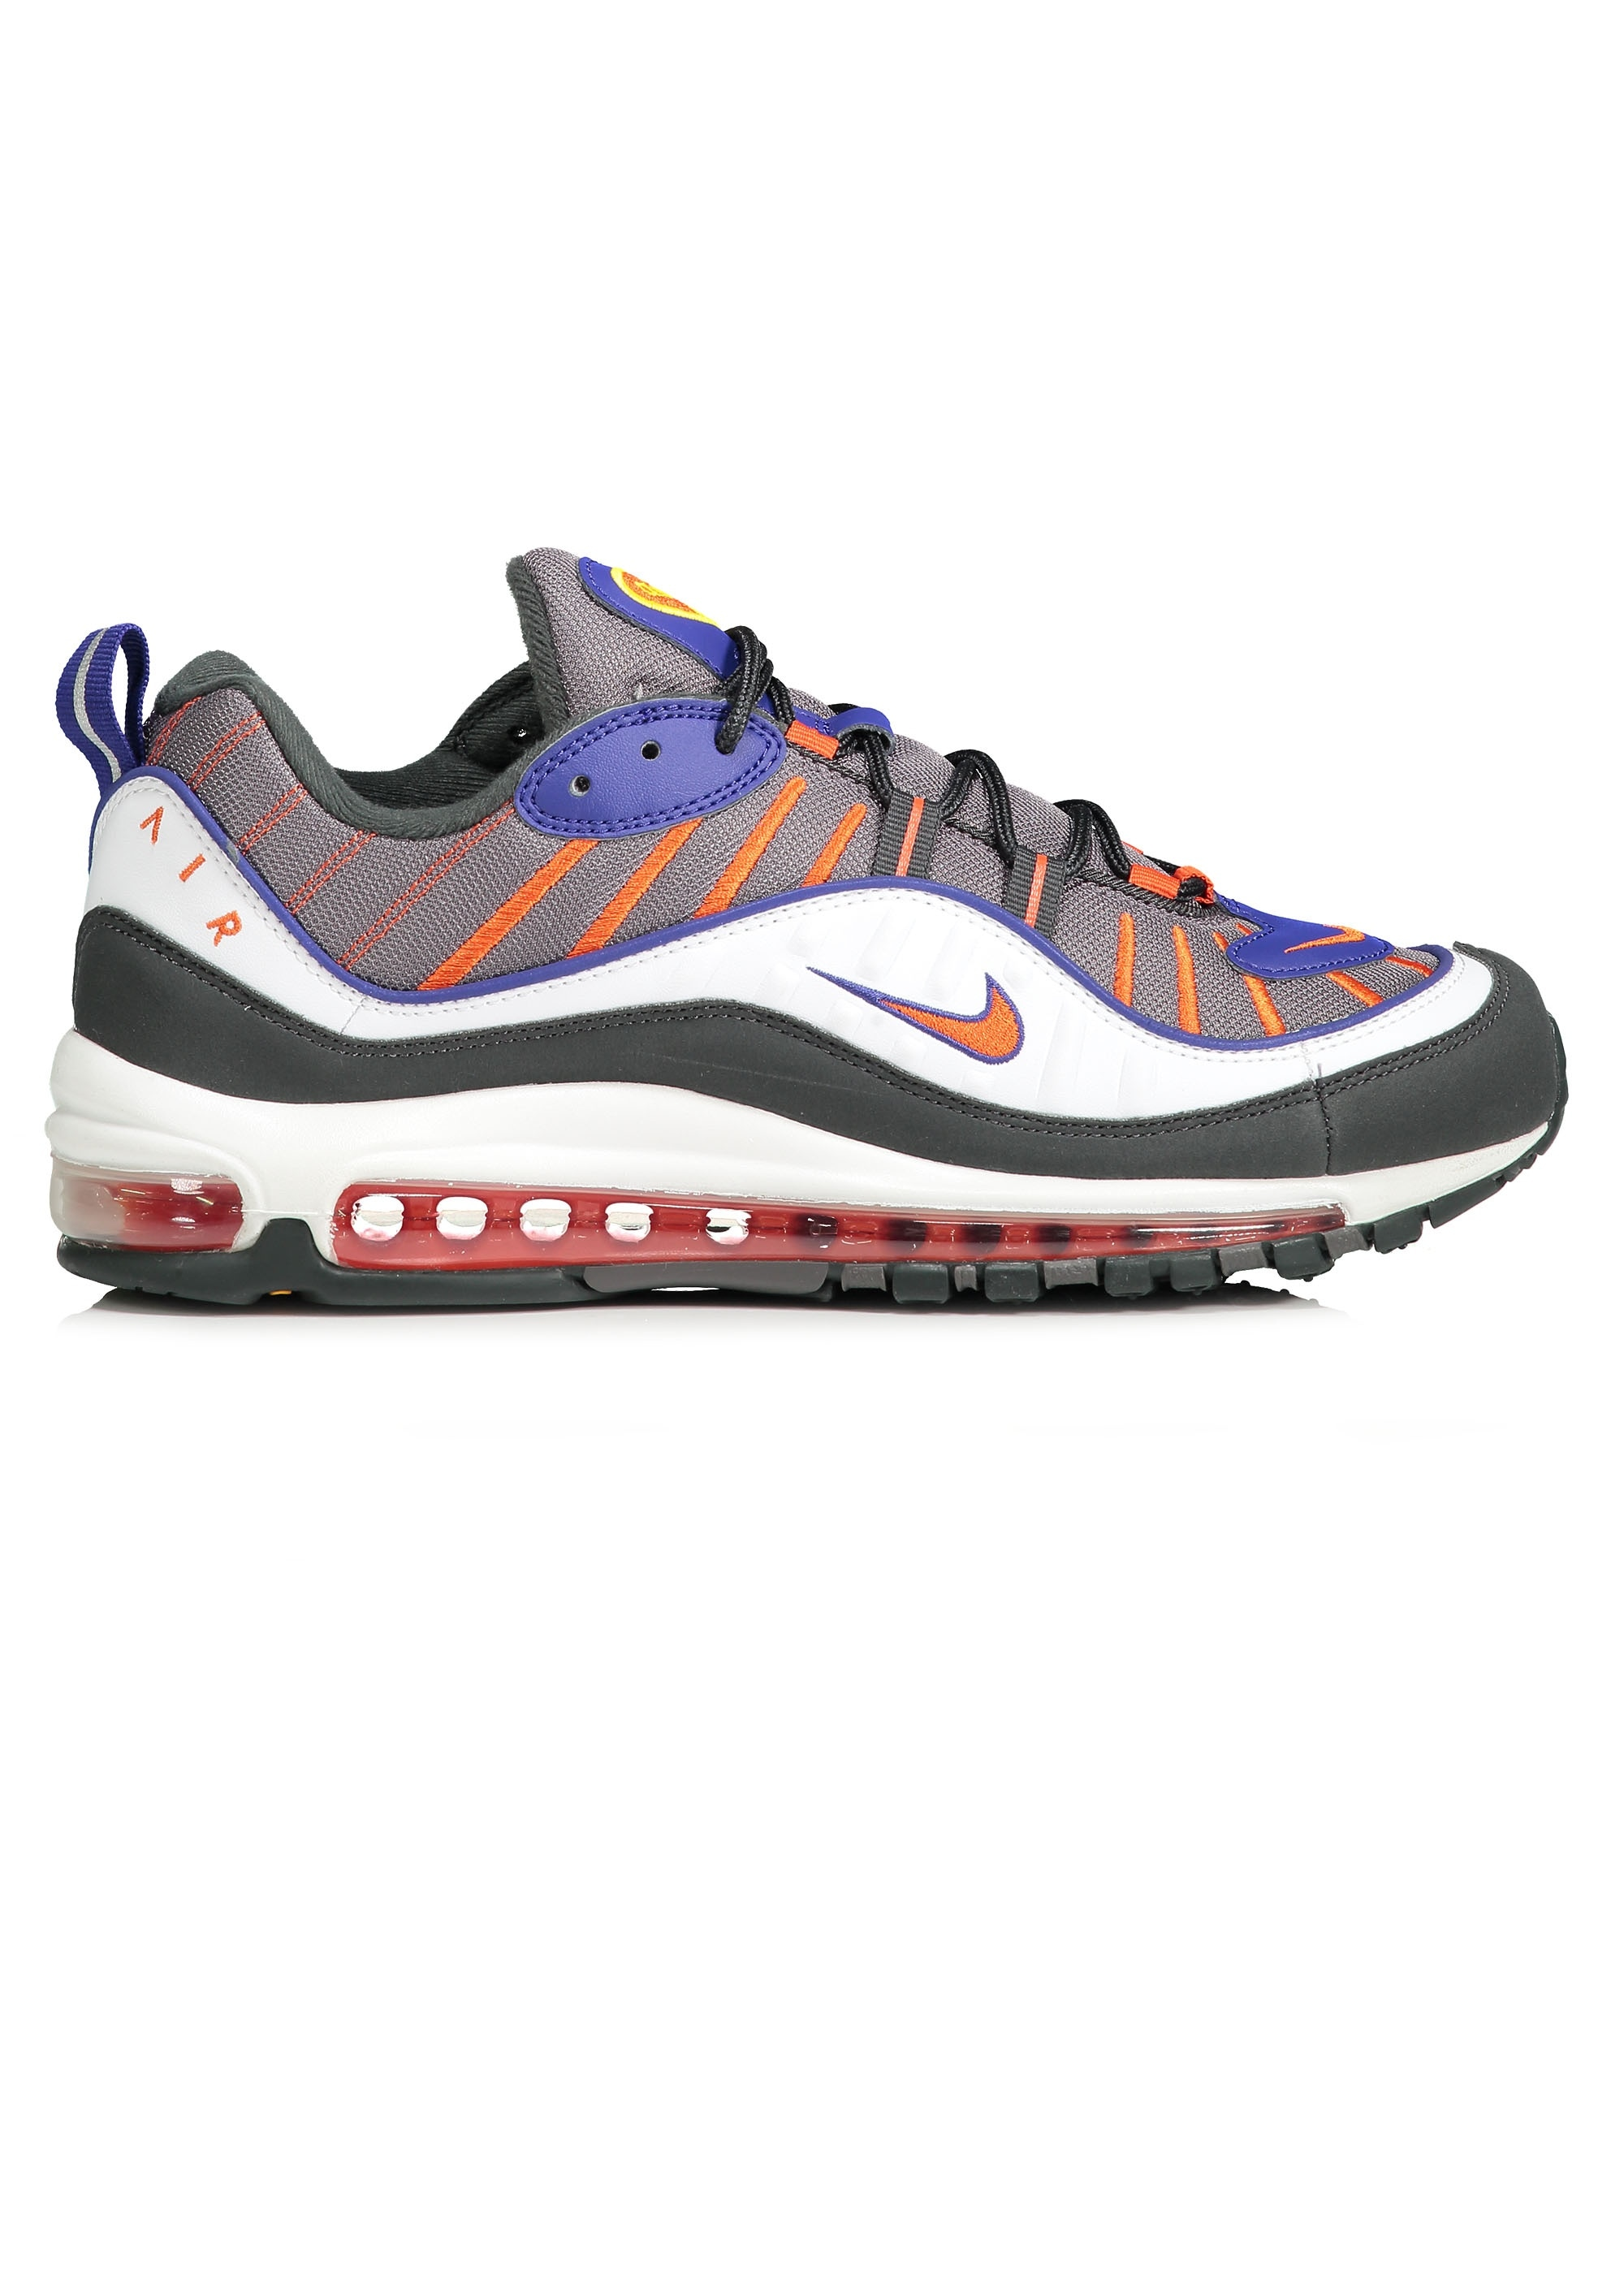 sports shoes 6d5ab ede19 Air Max 98 - Gunsmoke / Team Orange